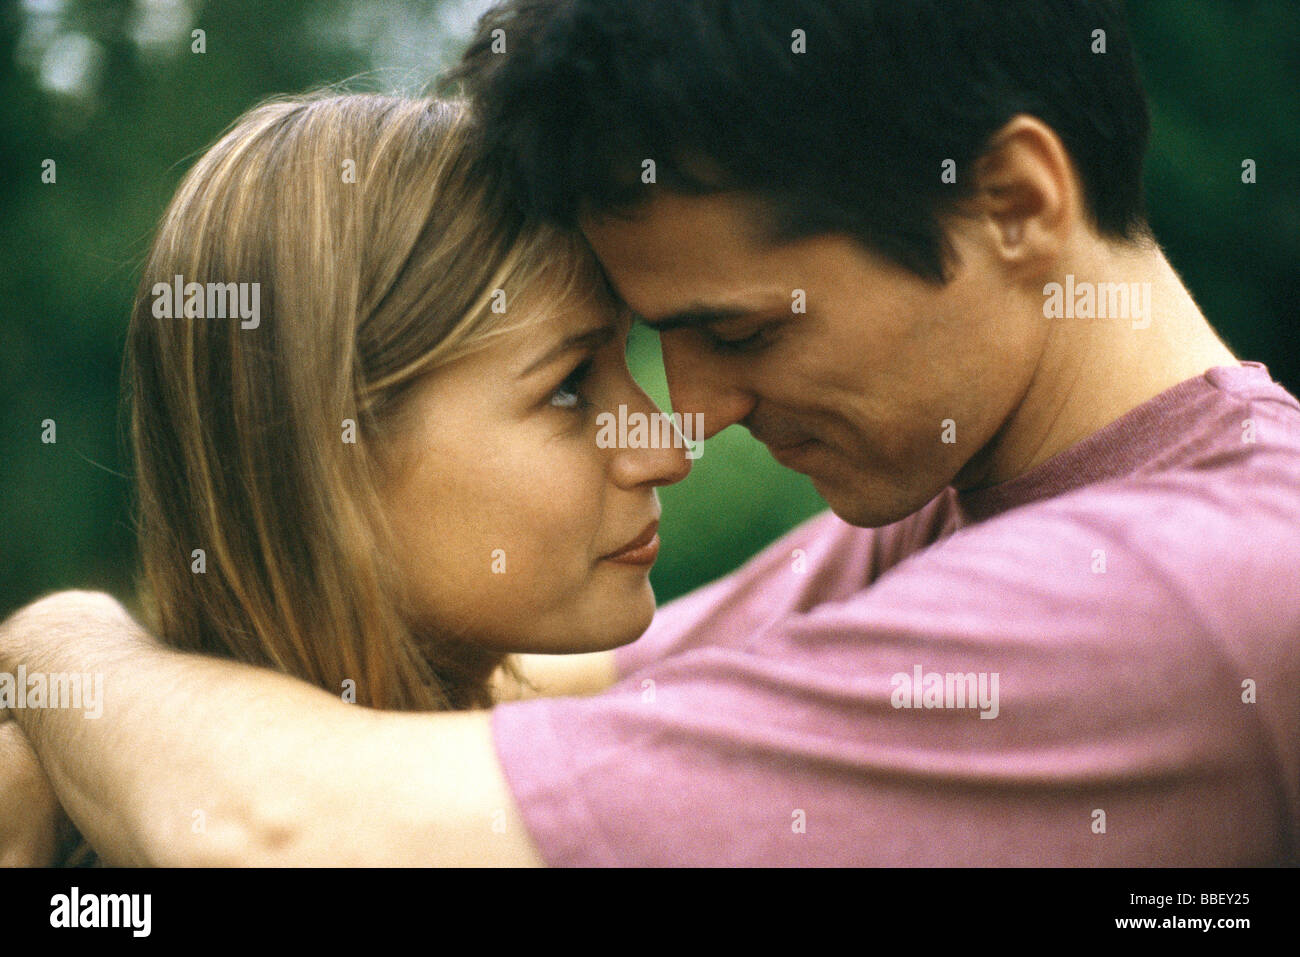 Couple embracing, touching foreheads, side view - Stock Image